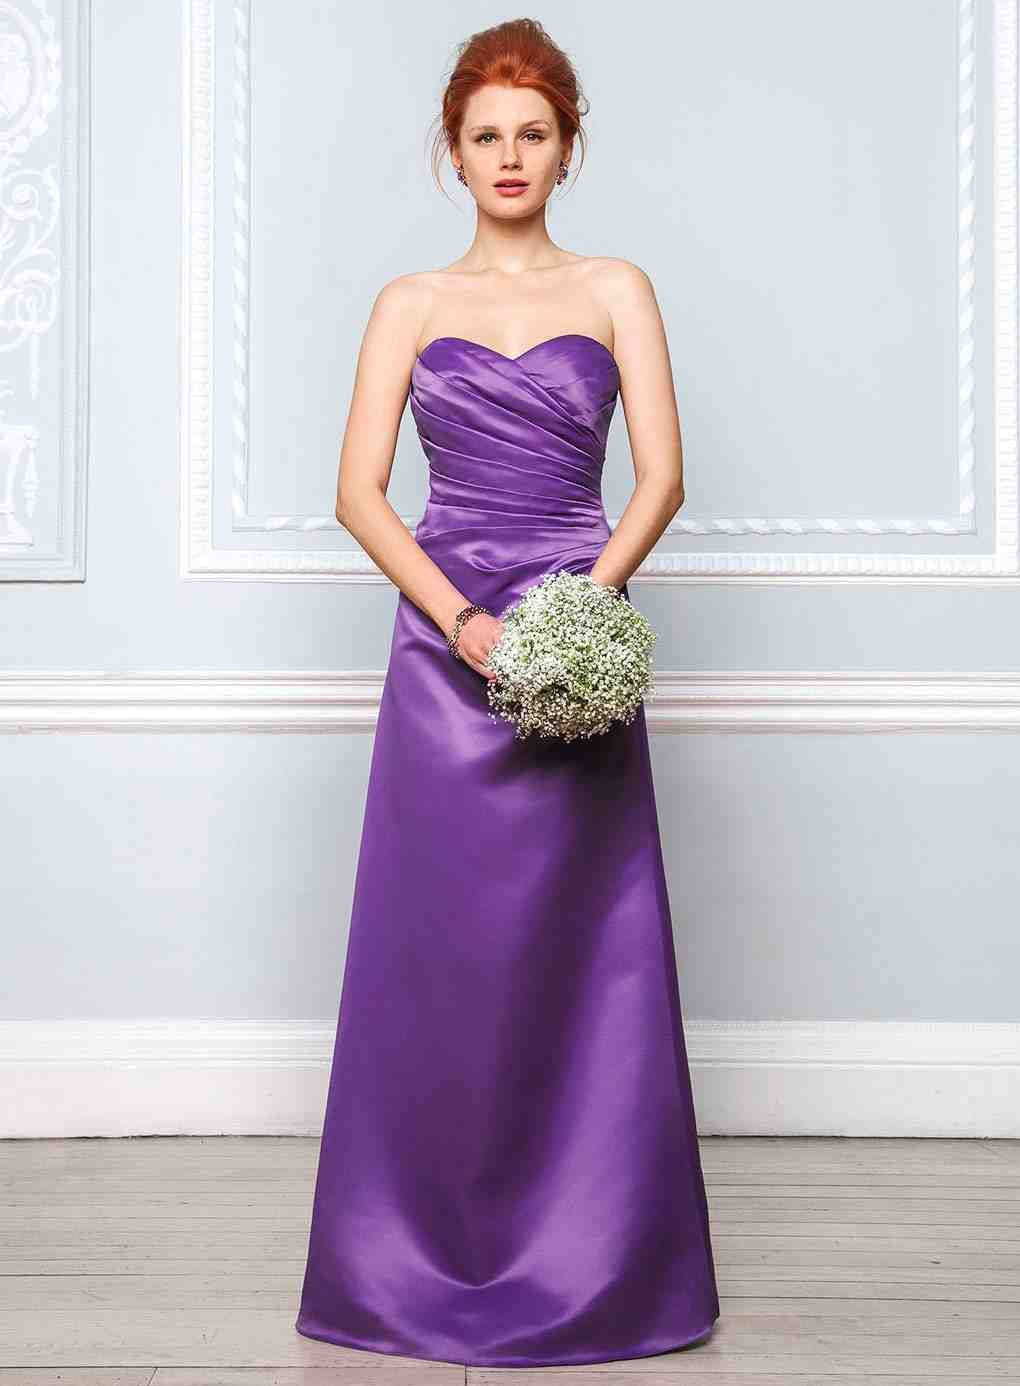 Purple bridesmaid dresses purple bridesmaid dresses pinterest purple bridesmaid dresses ombrellifo Image collections